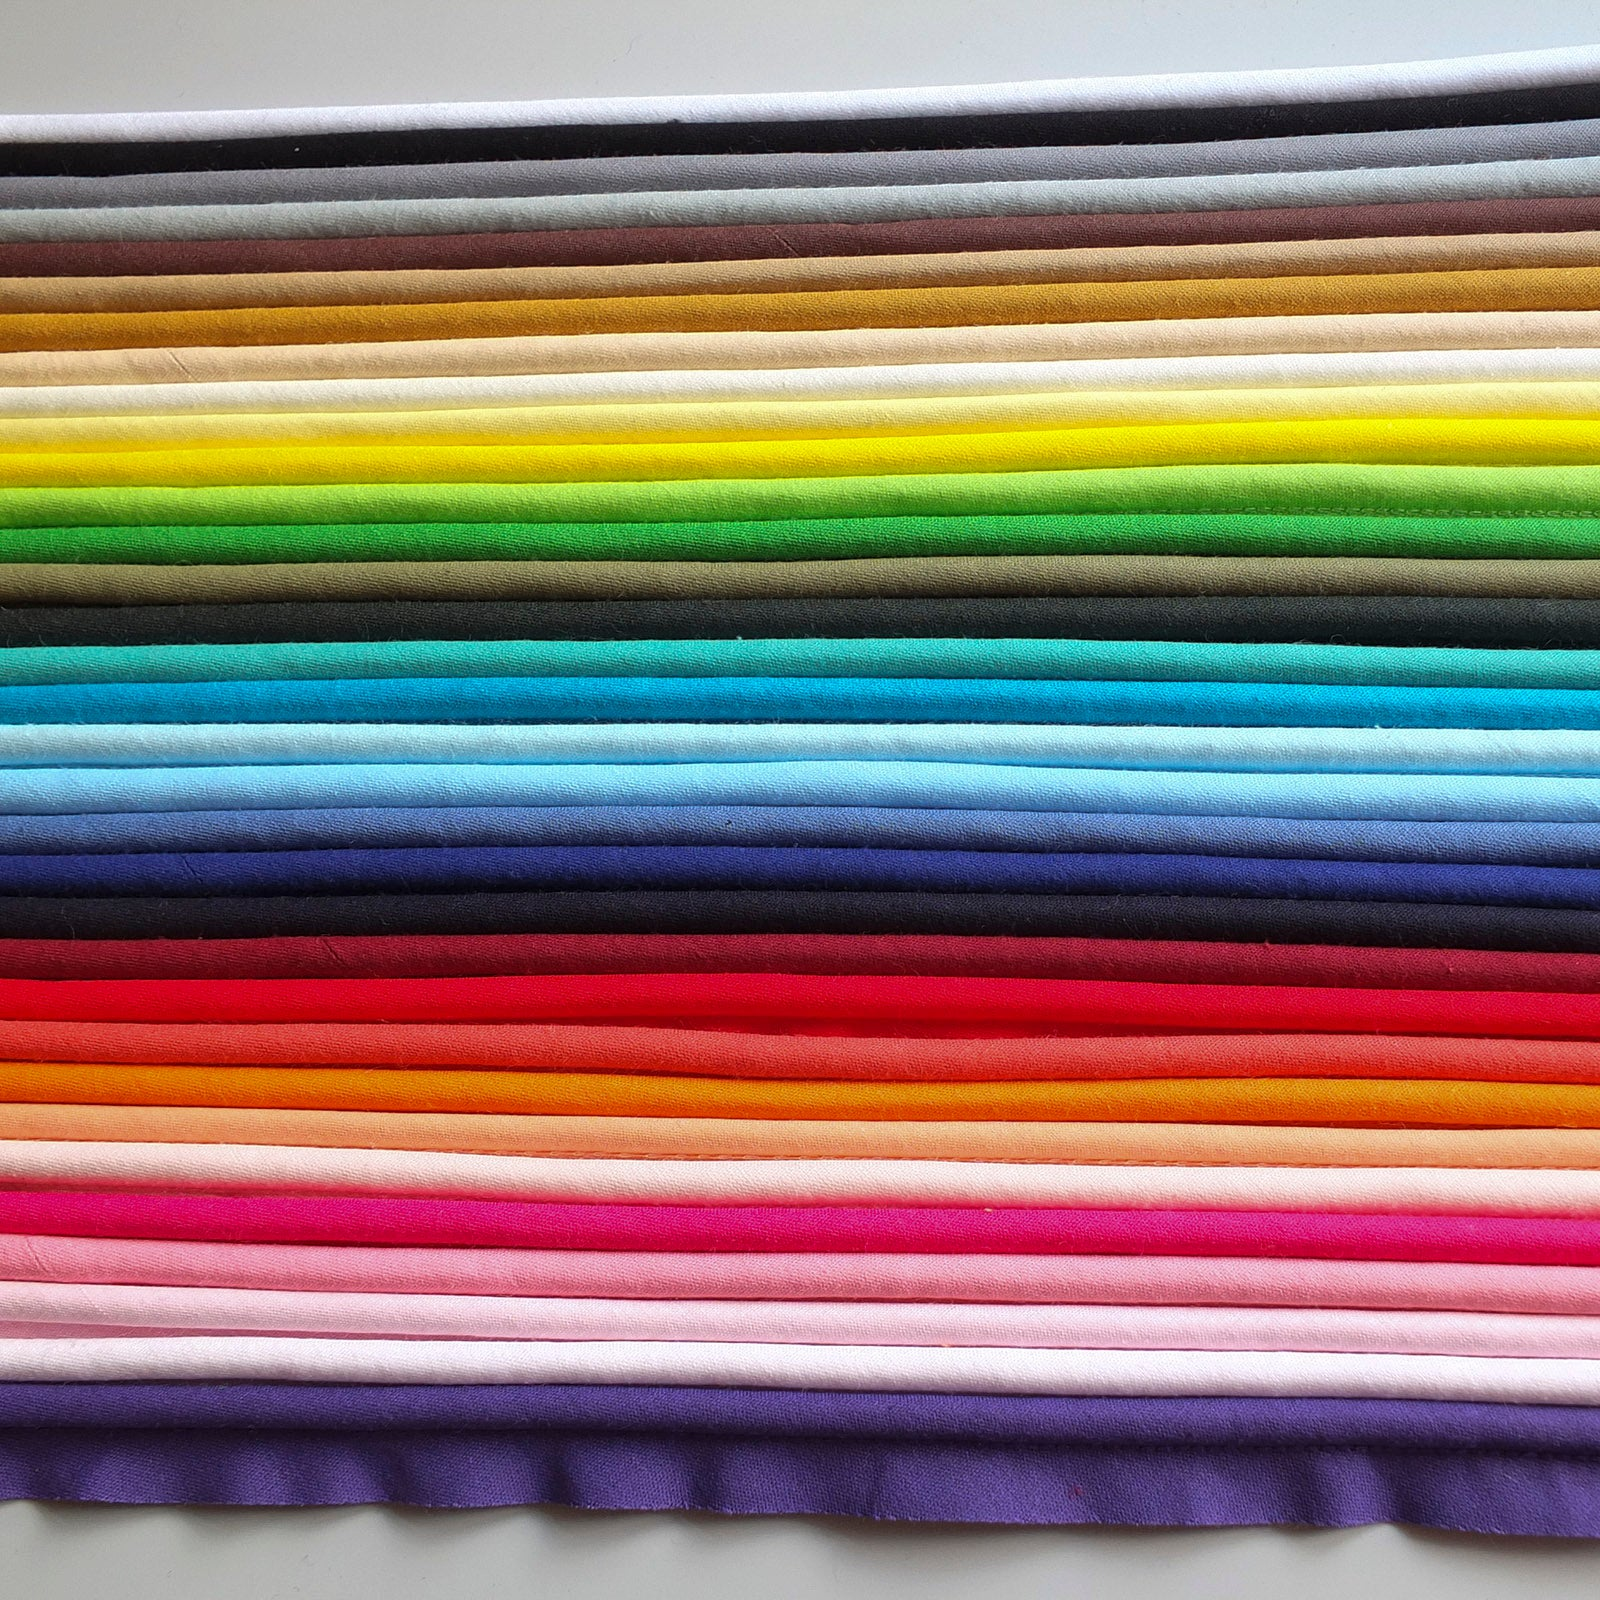 2m of 10mm Satin Piping Insertion Cord Flange Bias Piping Upholstery Sewing